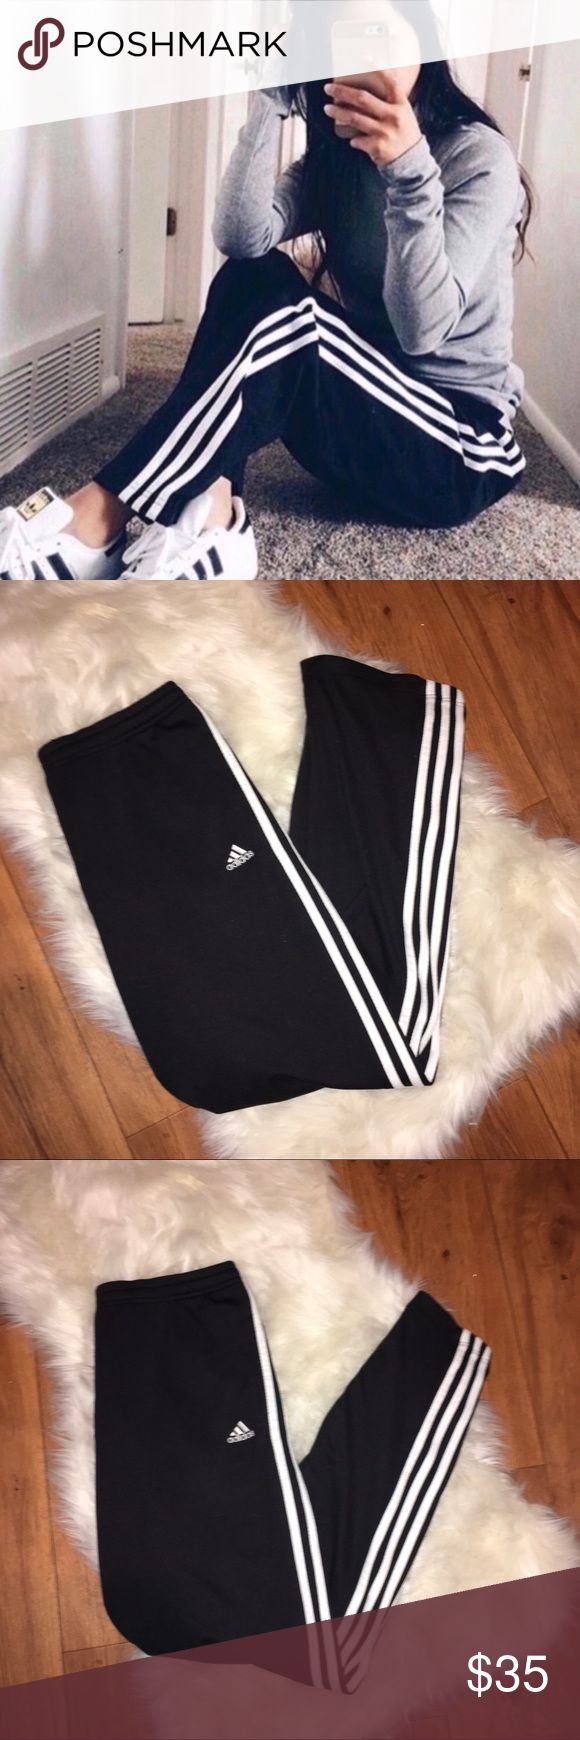 💫 Adidas Superstar Track Pants ✨Adidas Superstar Athletic Track Pants  - Black with white racing stripes down sides. Vintage 90's style.  Logo on front - Size Womans medium  - %100 polyester - light weight Jersey material, super comfortable  - loose, slouchy fit, strait legs, full length Perfect new condition - NWOT - purchased from PACSUN TAGS: #pacsun #athletic #90s #gym adidas Pants Track Pants & Joggers